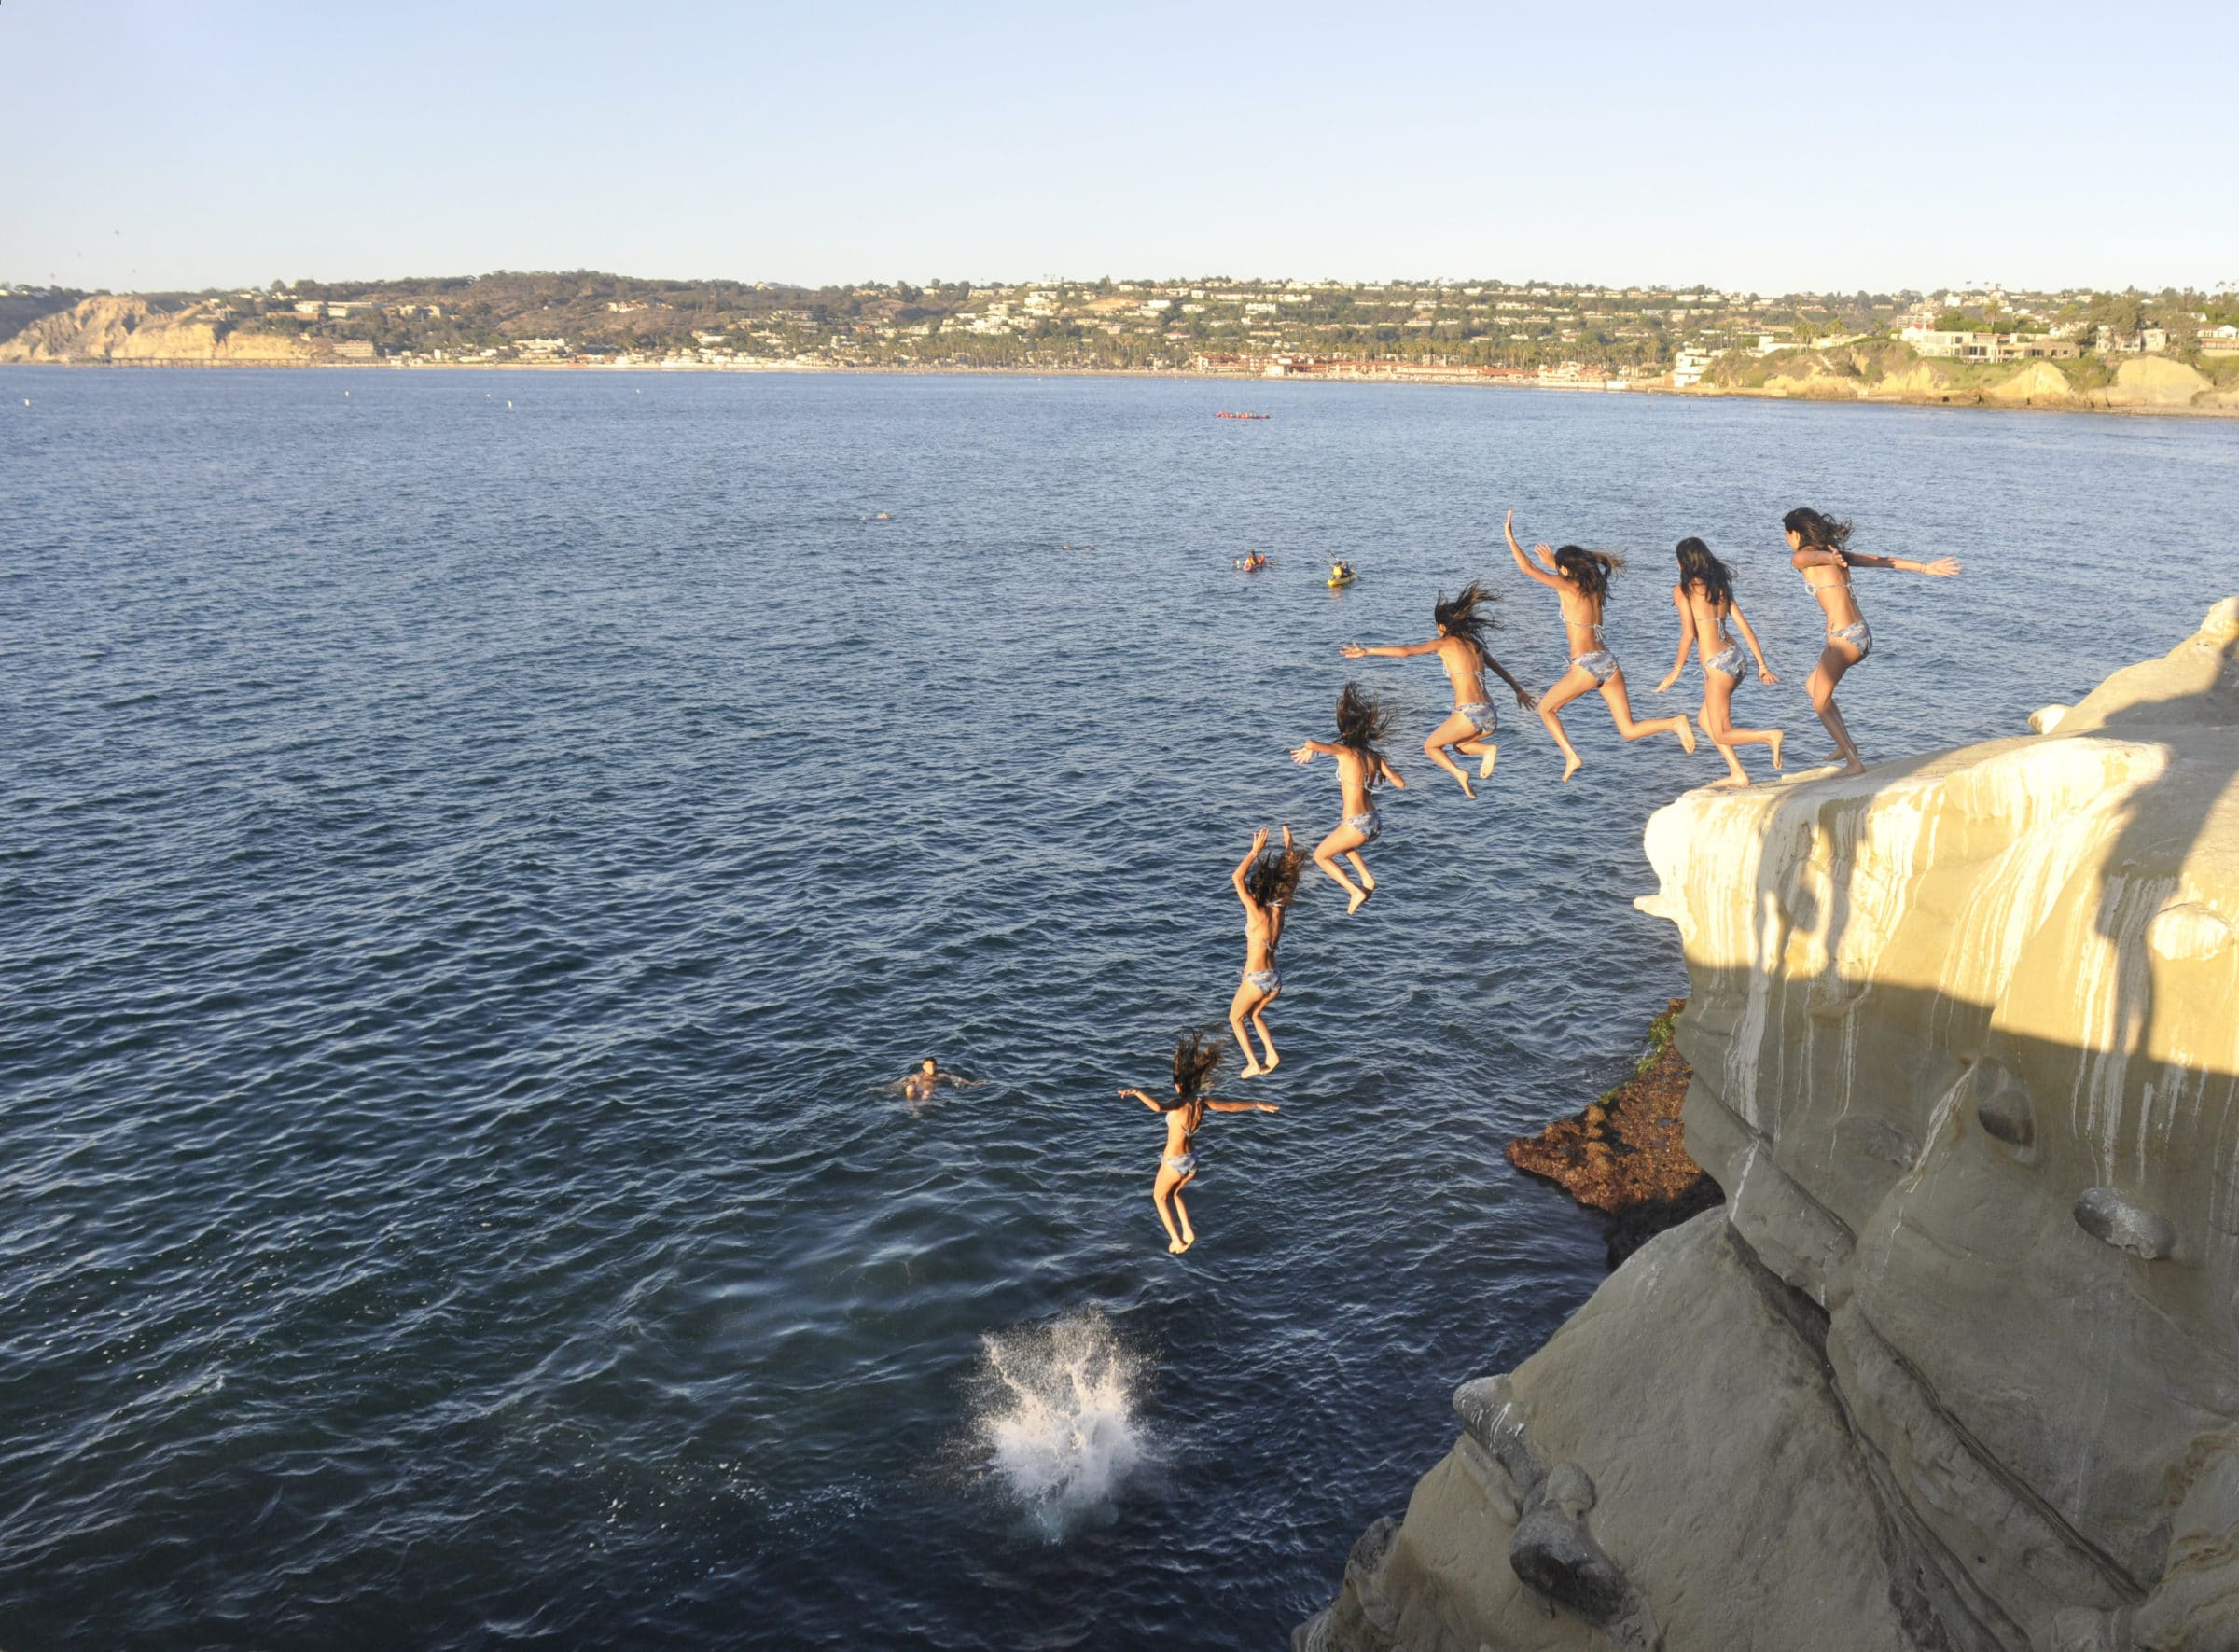 La_Jolla_Cove_cliff_diving